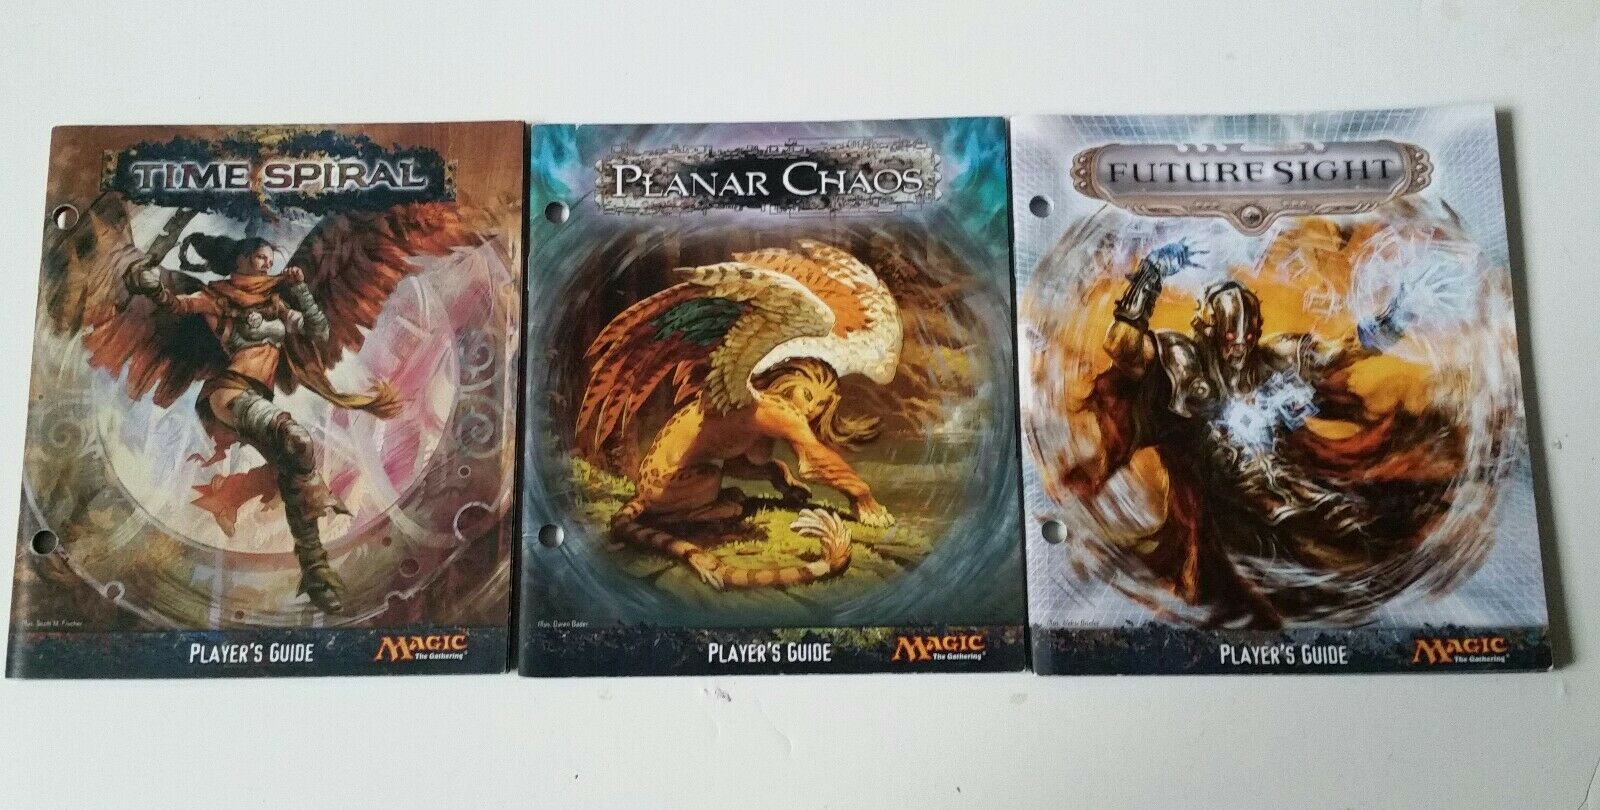 Mtg zeit spirale planar chaos zukunft sehen player 's guide magic the gathering menge